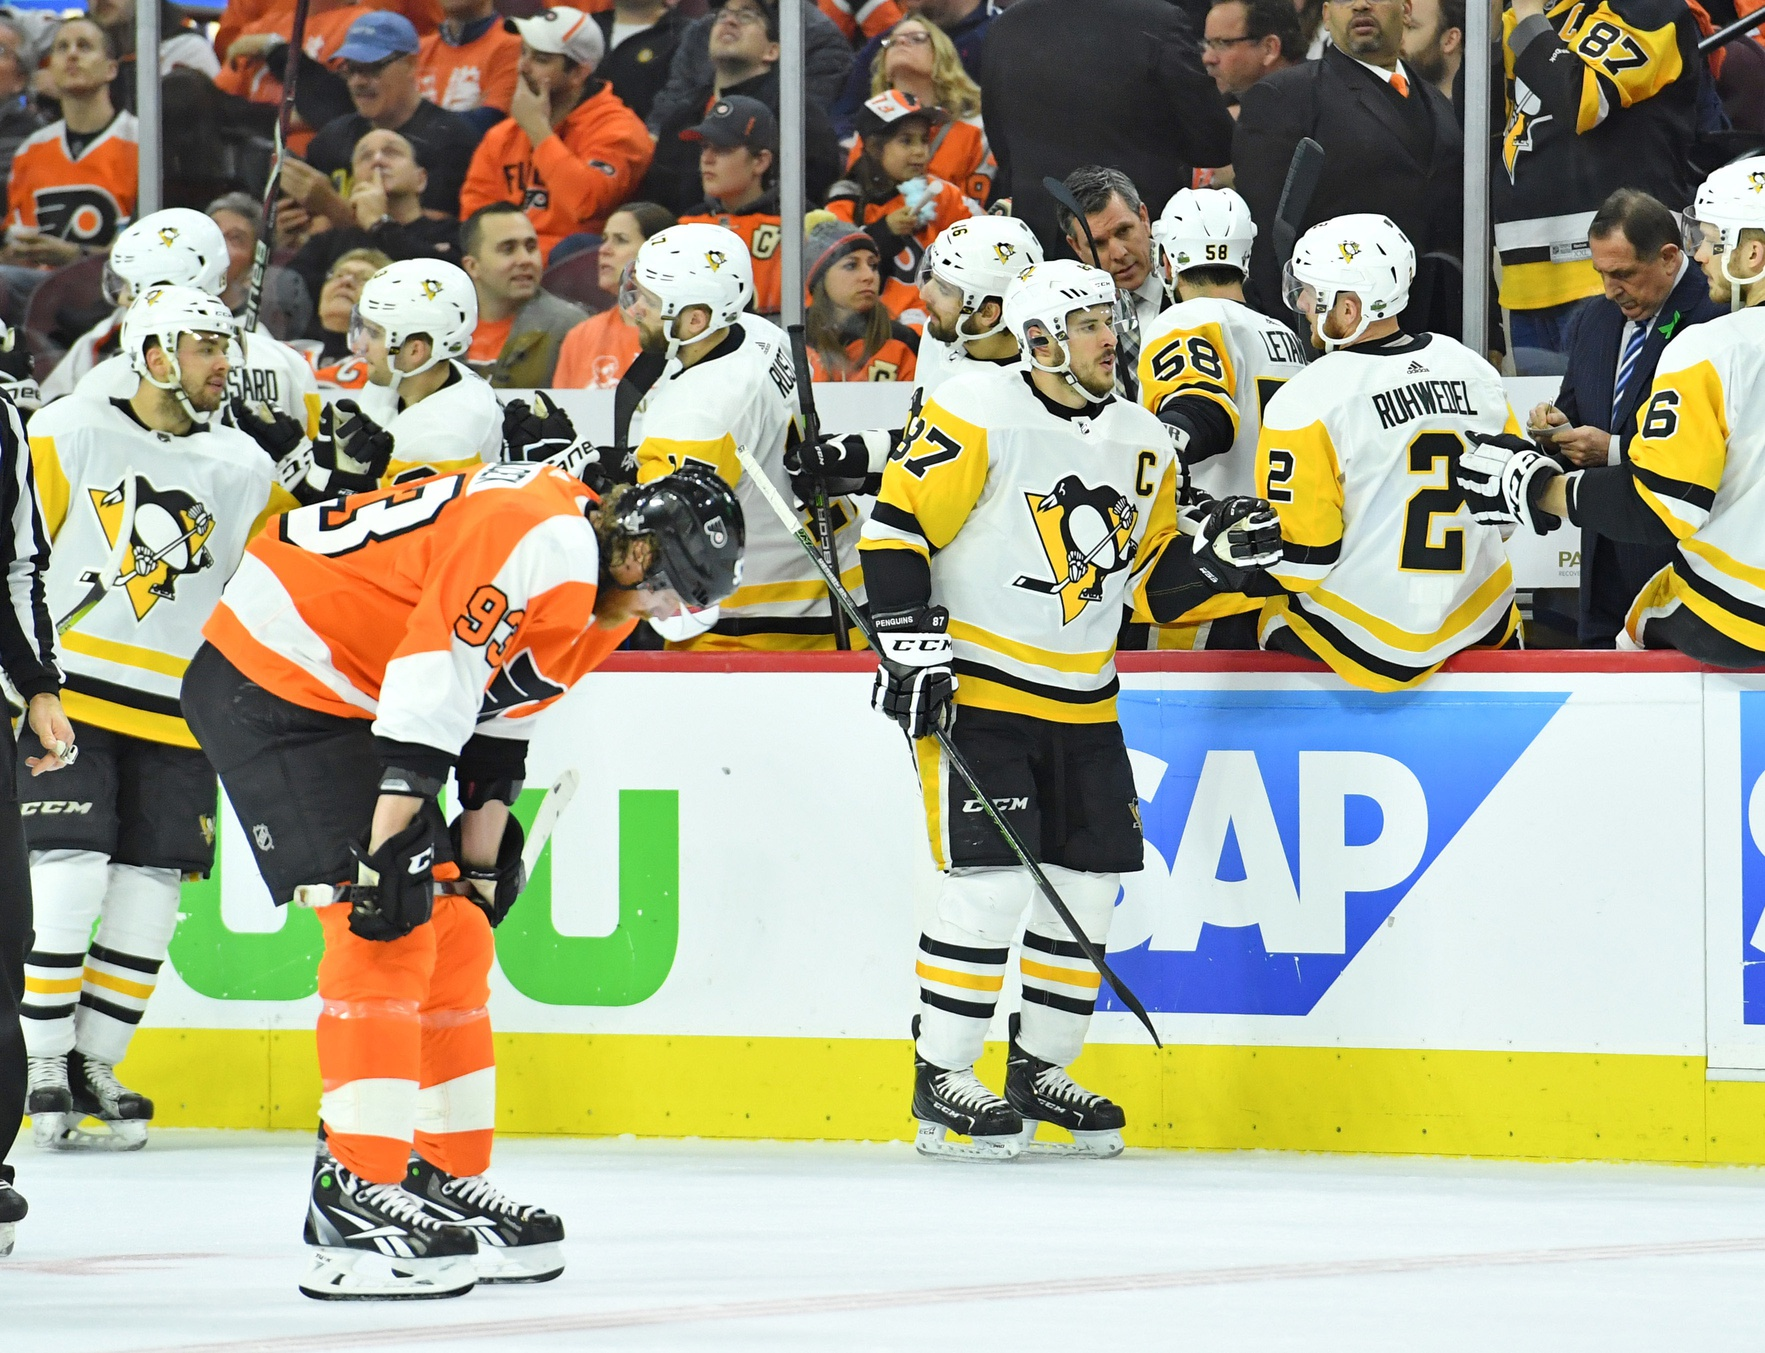 Sidney-crosby-penguins-celebrates-goal-against-philadelphia-flyers-in-the-stanley-cup-playoffs